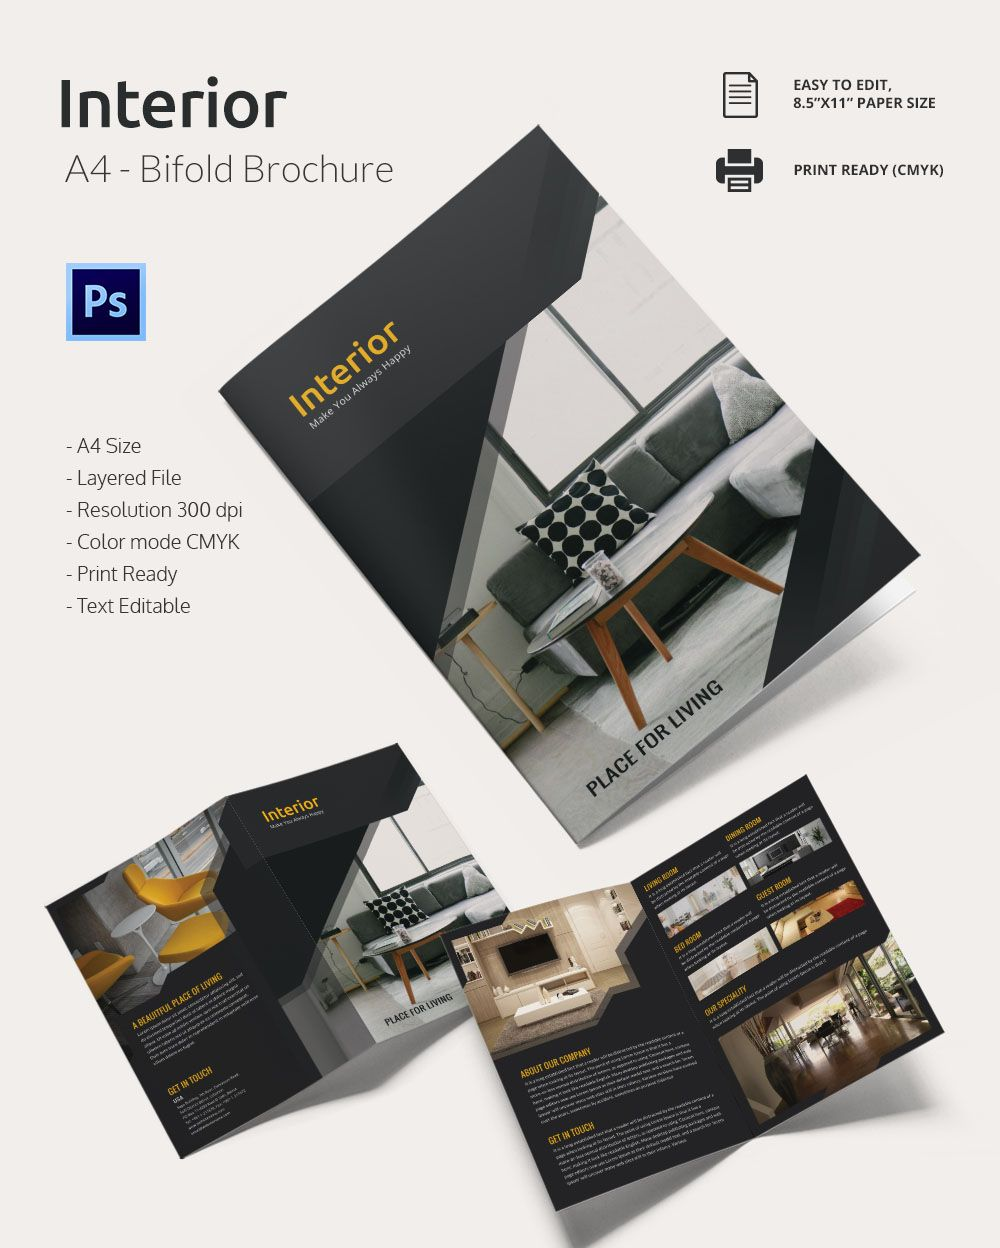 Interior Design Brochure 20 Free Psd Eps Indesign Format